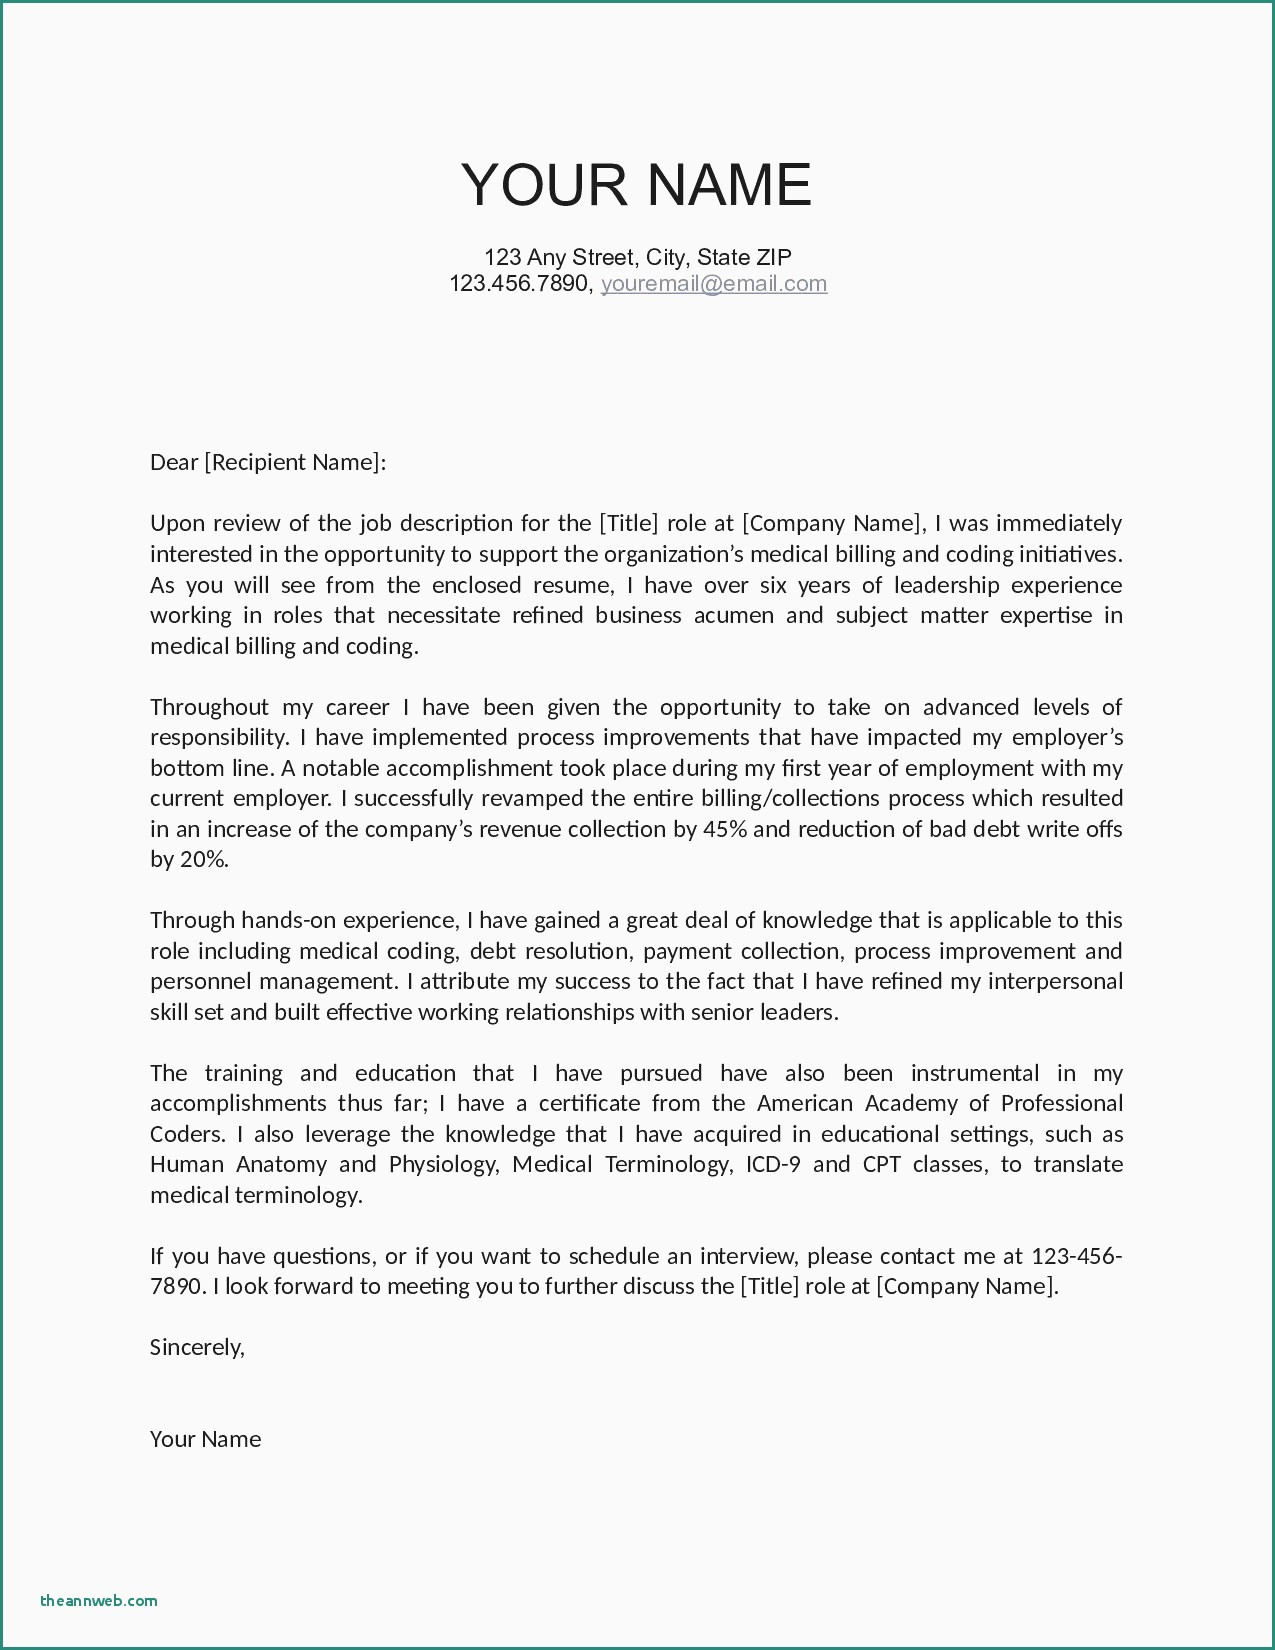 Resume and Cover Letter Review - Medical Cover Letter Inspirationa Cover Letter Review Resume Review